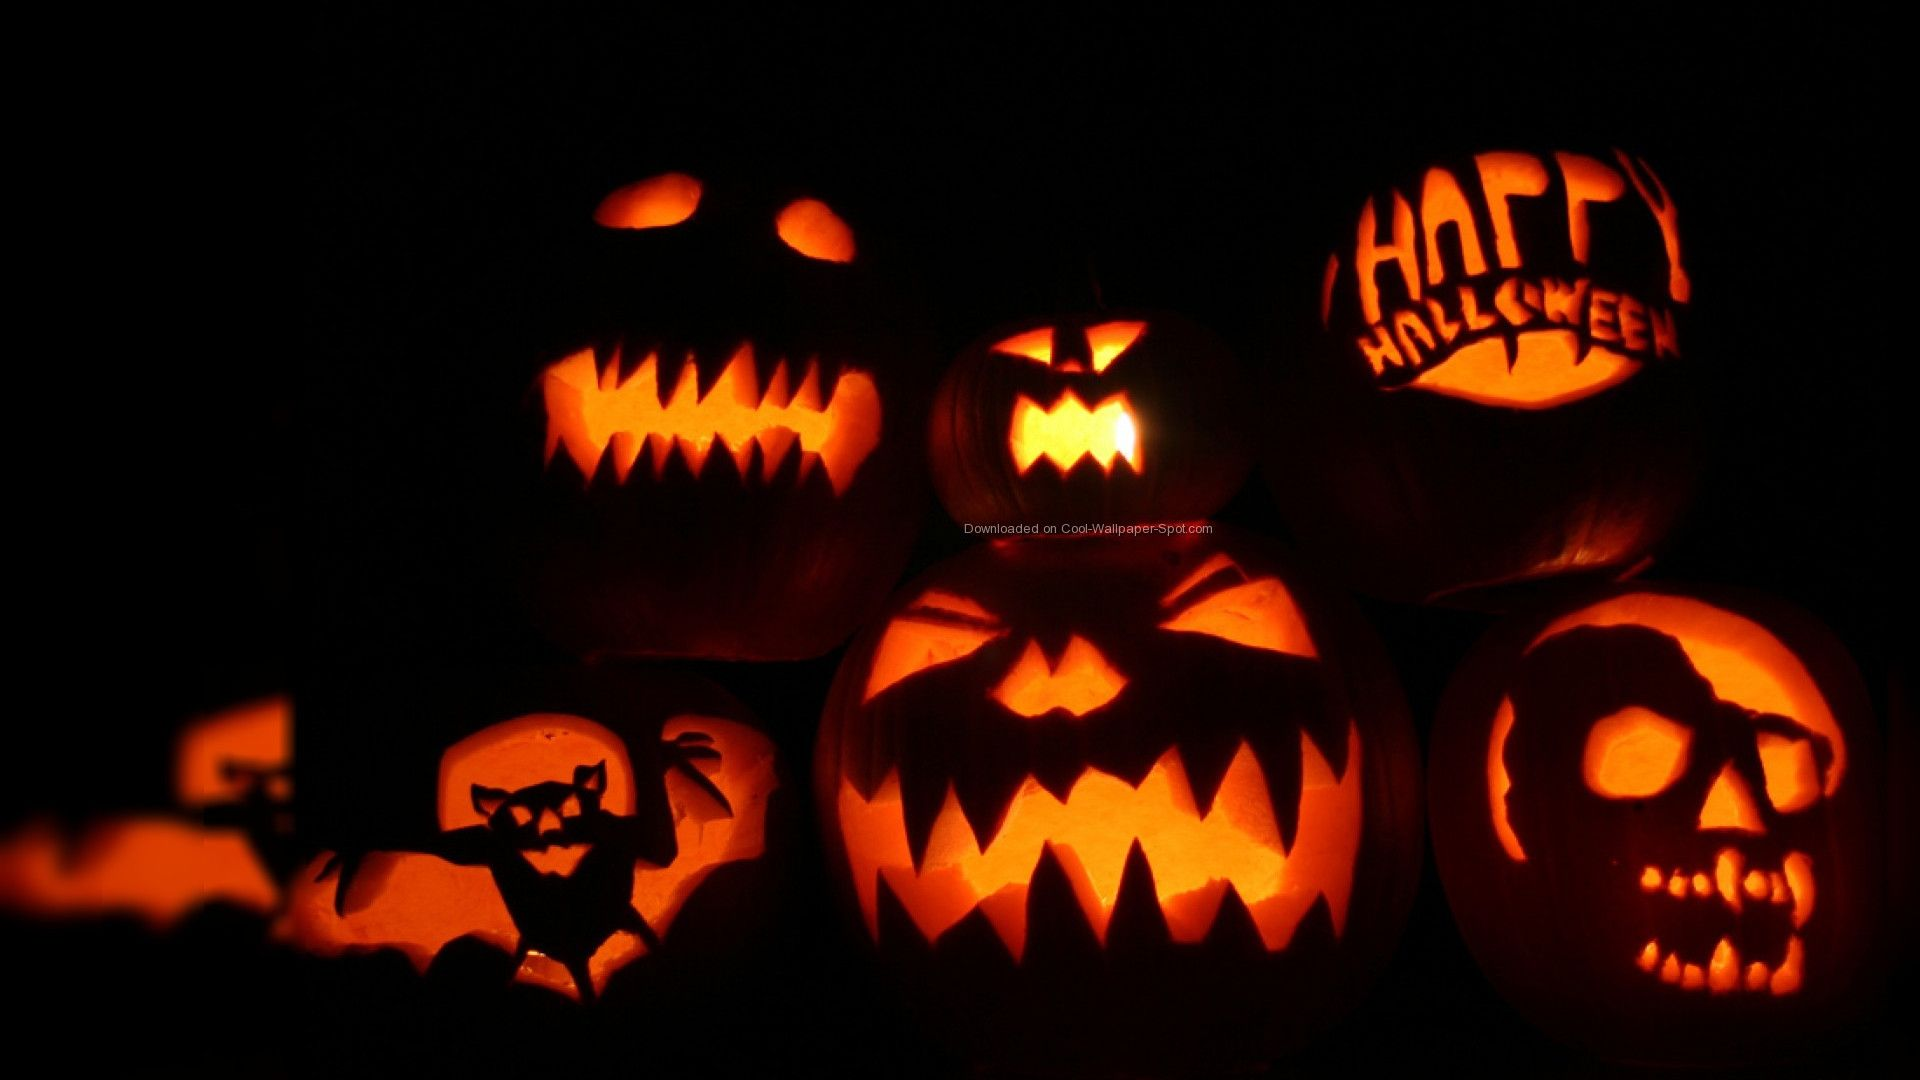 Free-Halloween-Images-1920%C3%971080-Free-For-Halloween-Adorable-wallpaper-wp3605859